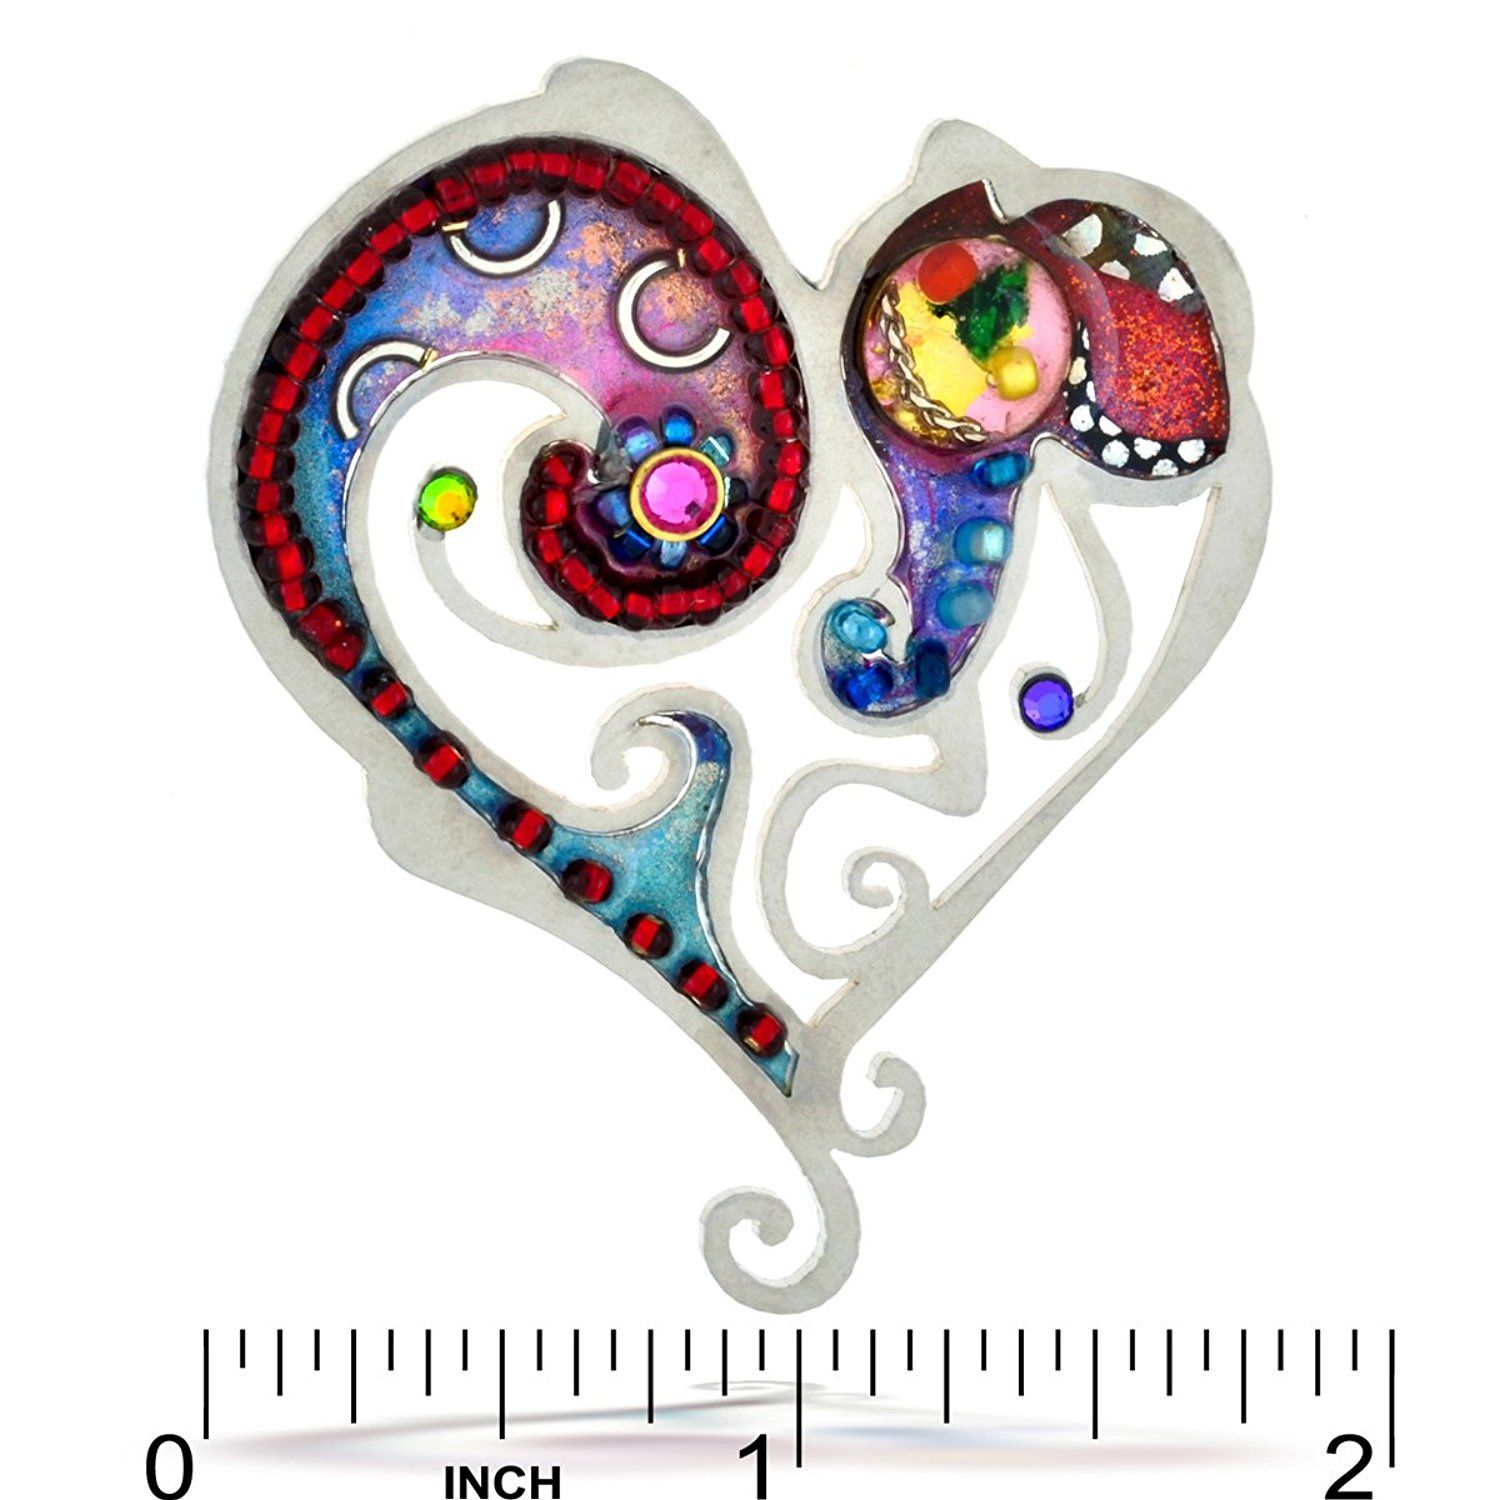 Superb Seeka Swirling Heart Love Pin From The Artazia Collection P0706 * Read More  At The Image